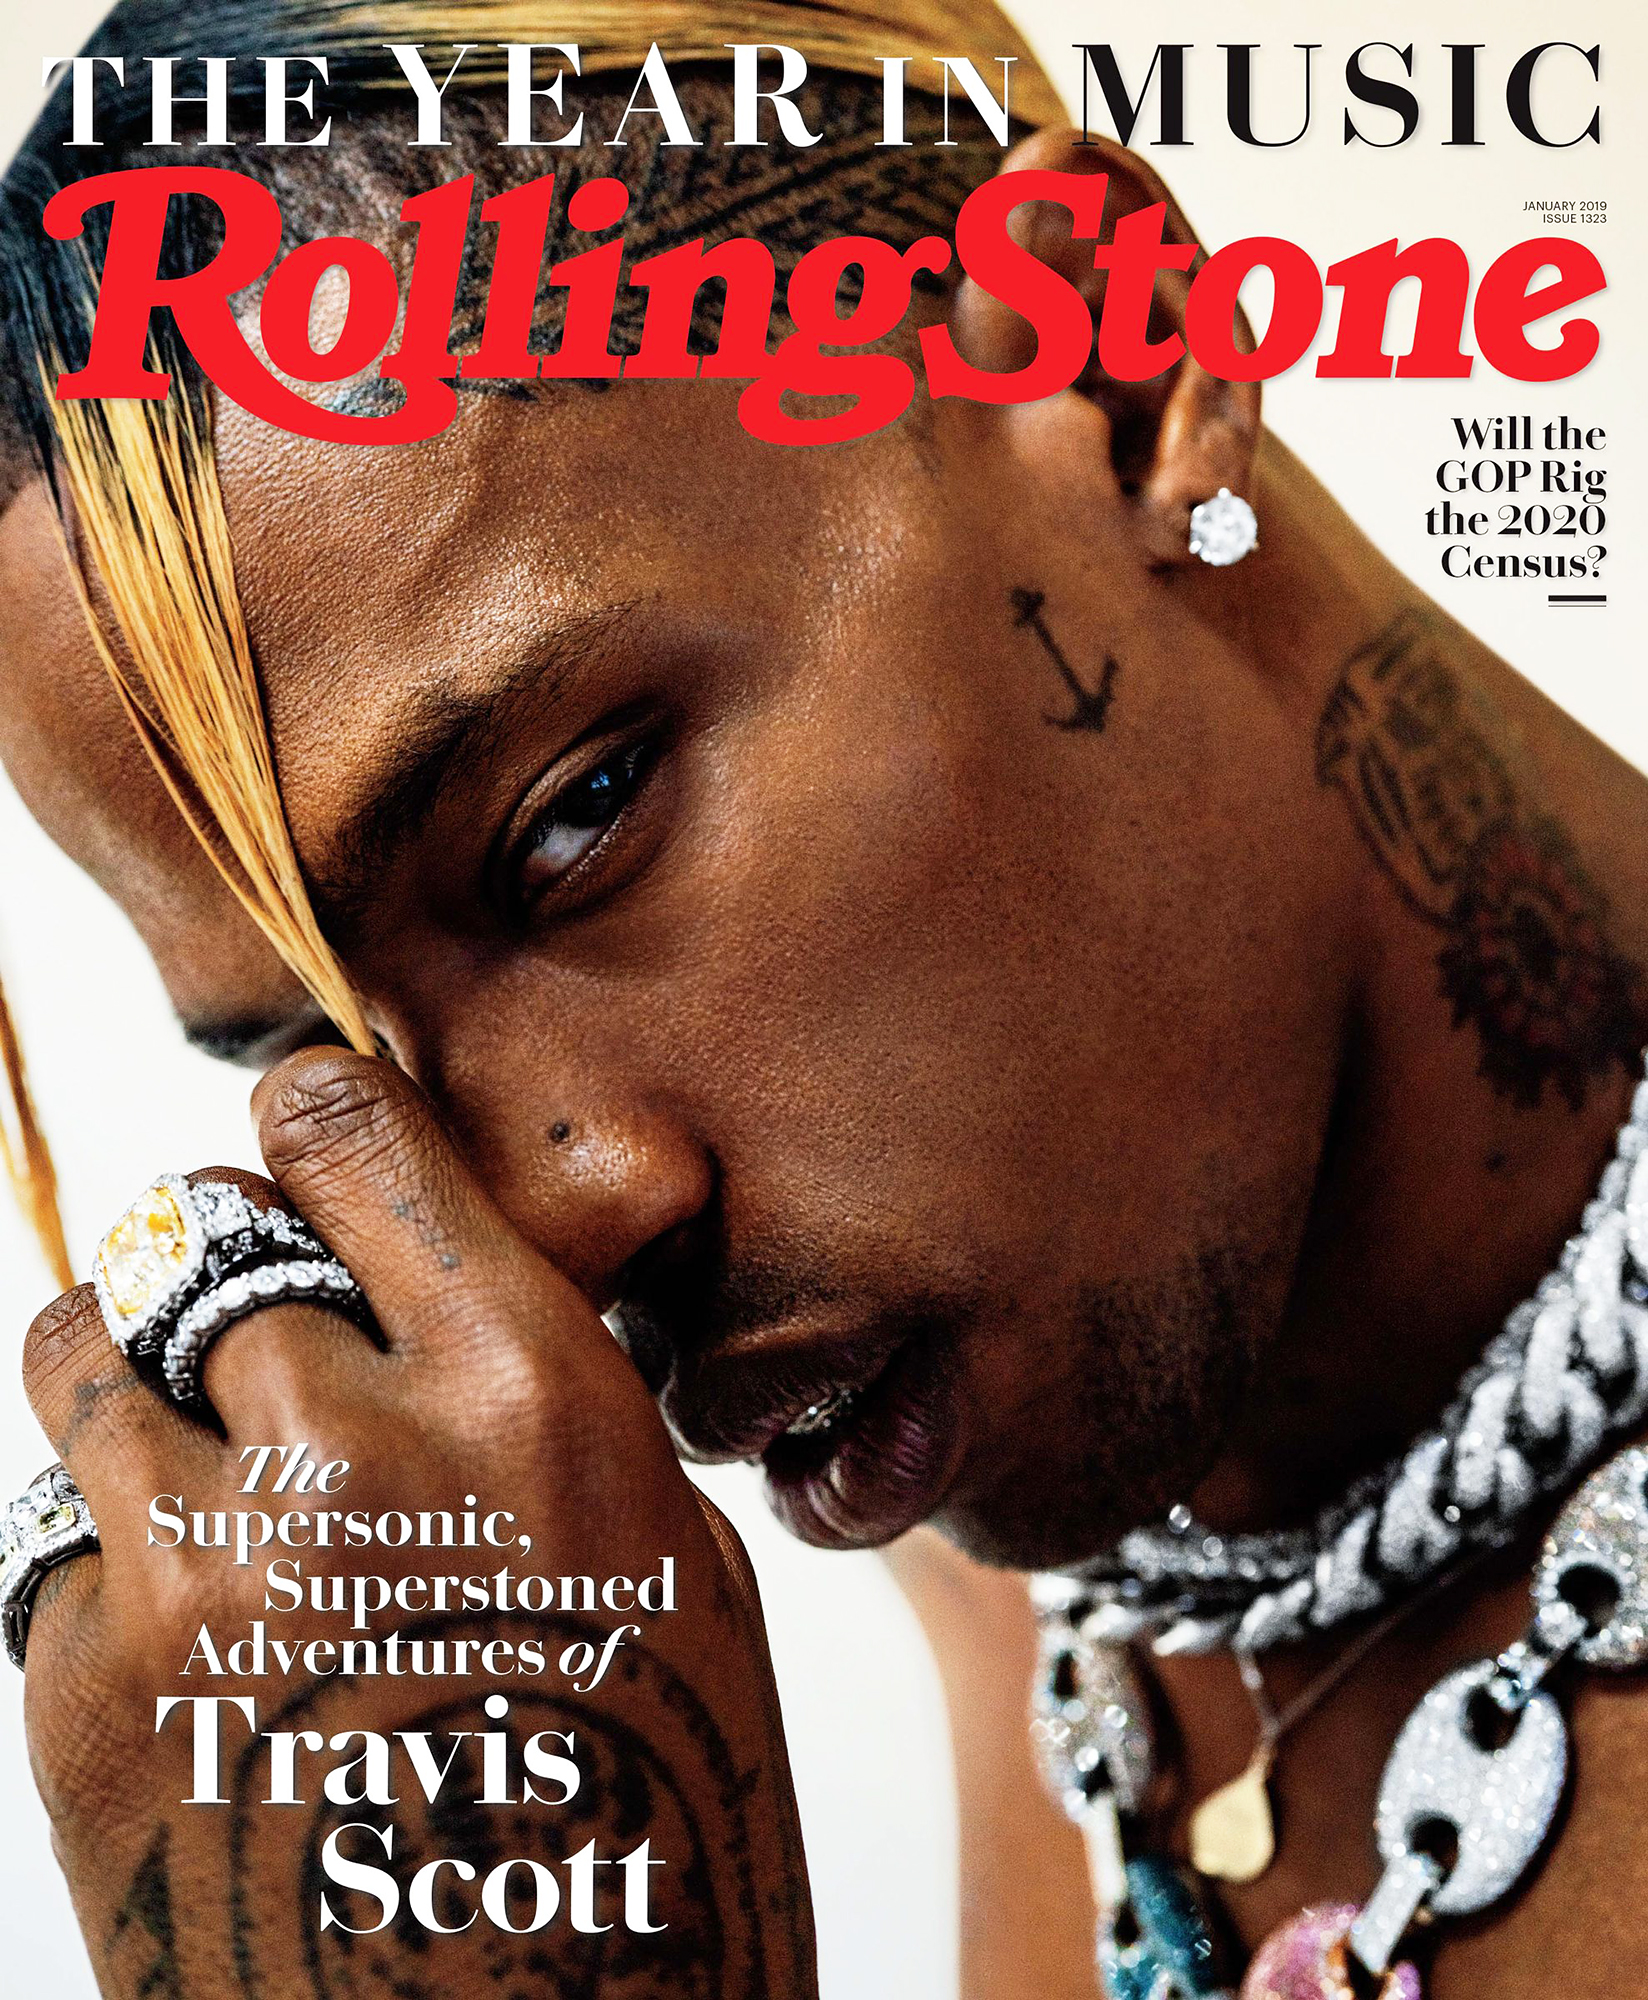 Travis Scott Kylie Jenner Married Soon Rolling Stone Interview Cover